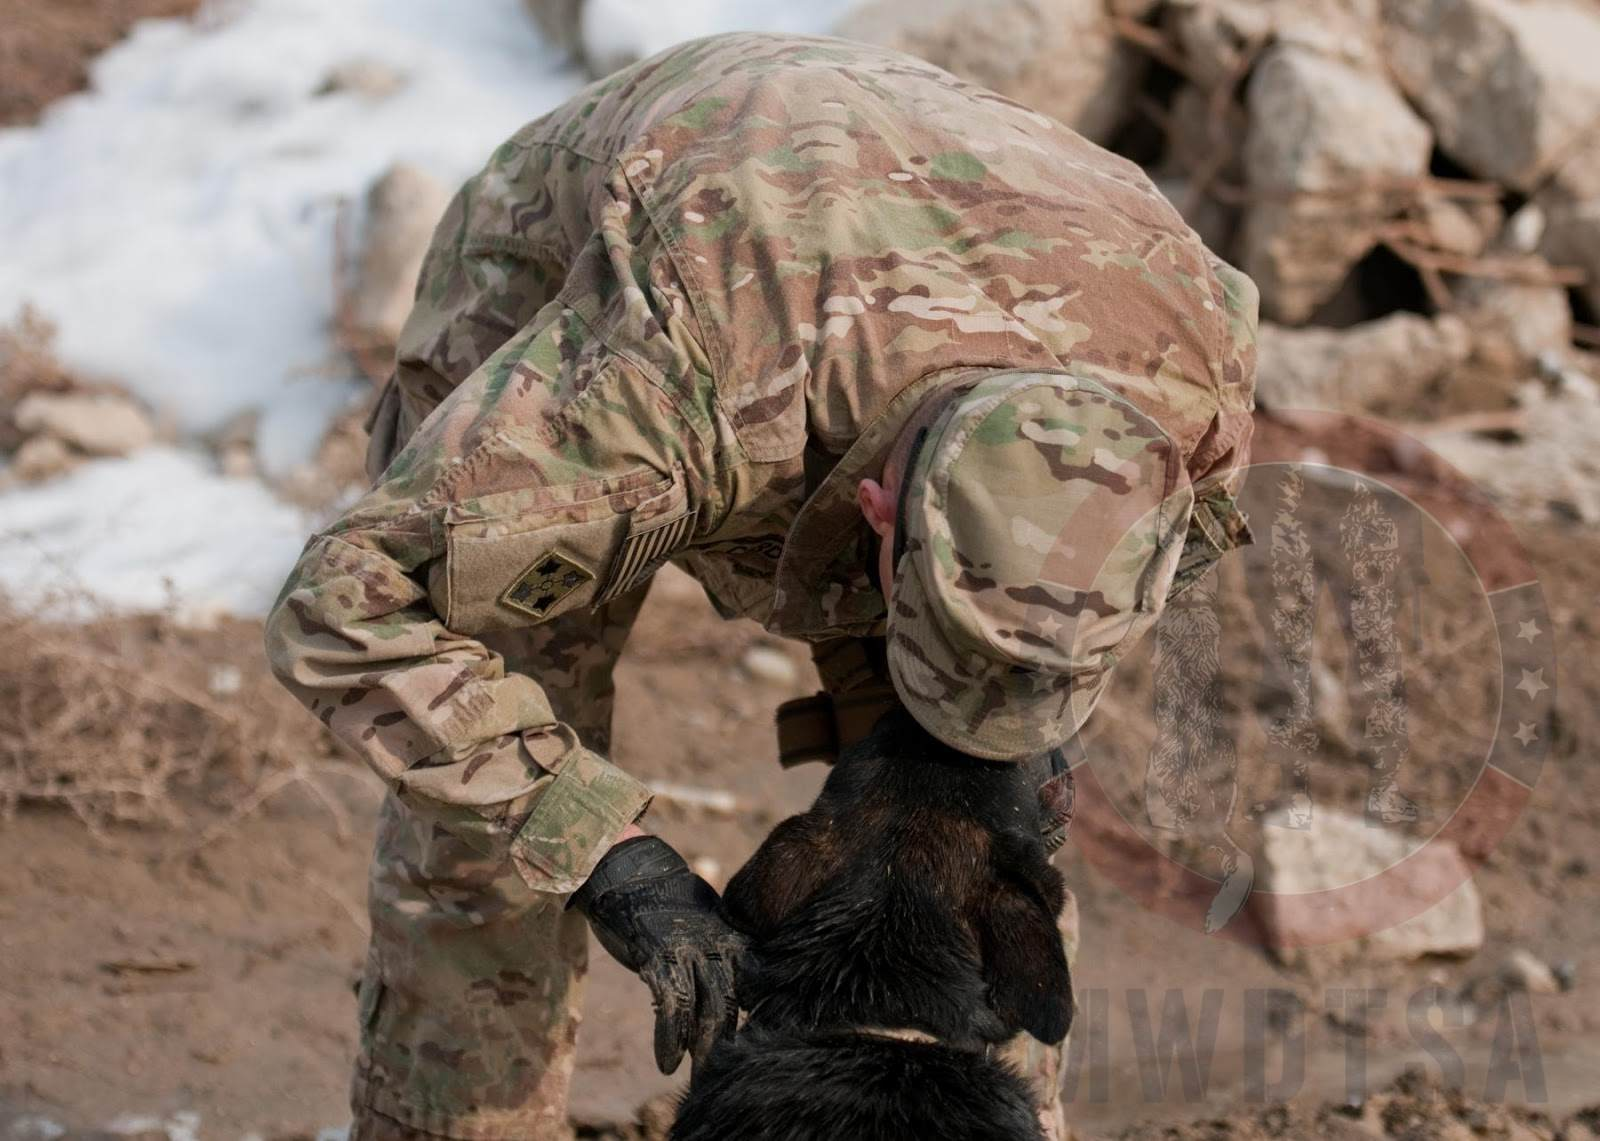 Sgt. Brian Curd, a dog handler, shows Staff Sgt. Allen, a mine-detection dog, some affection after a training session at Bagram Air Field, Afghanistan, Jan. 8, 2013.